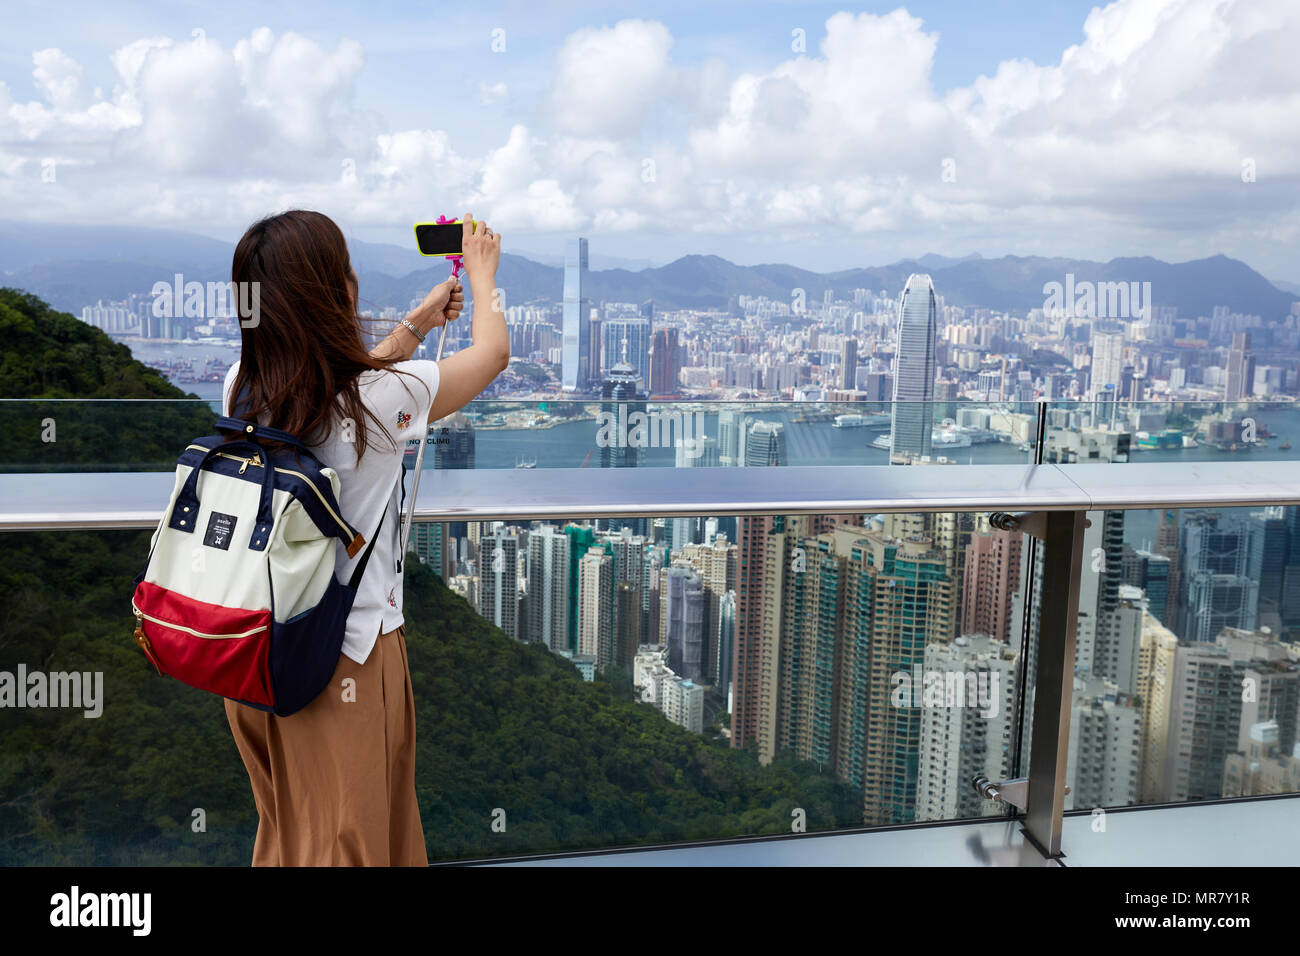 A sightseer takes photos of Hong Kong, looking towards Kowloon, as viewed from Victoria Peak on Hong Kong Island and overlooking the city. - Stock Image